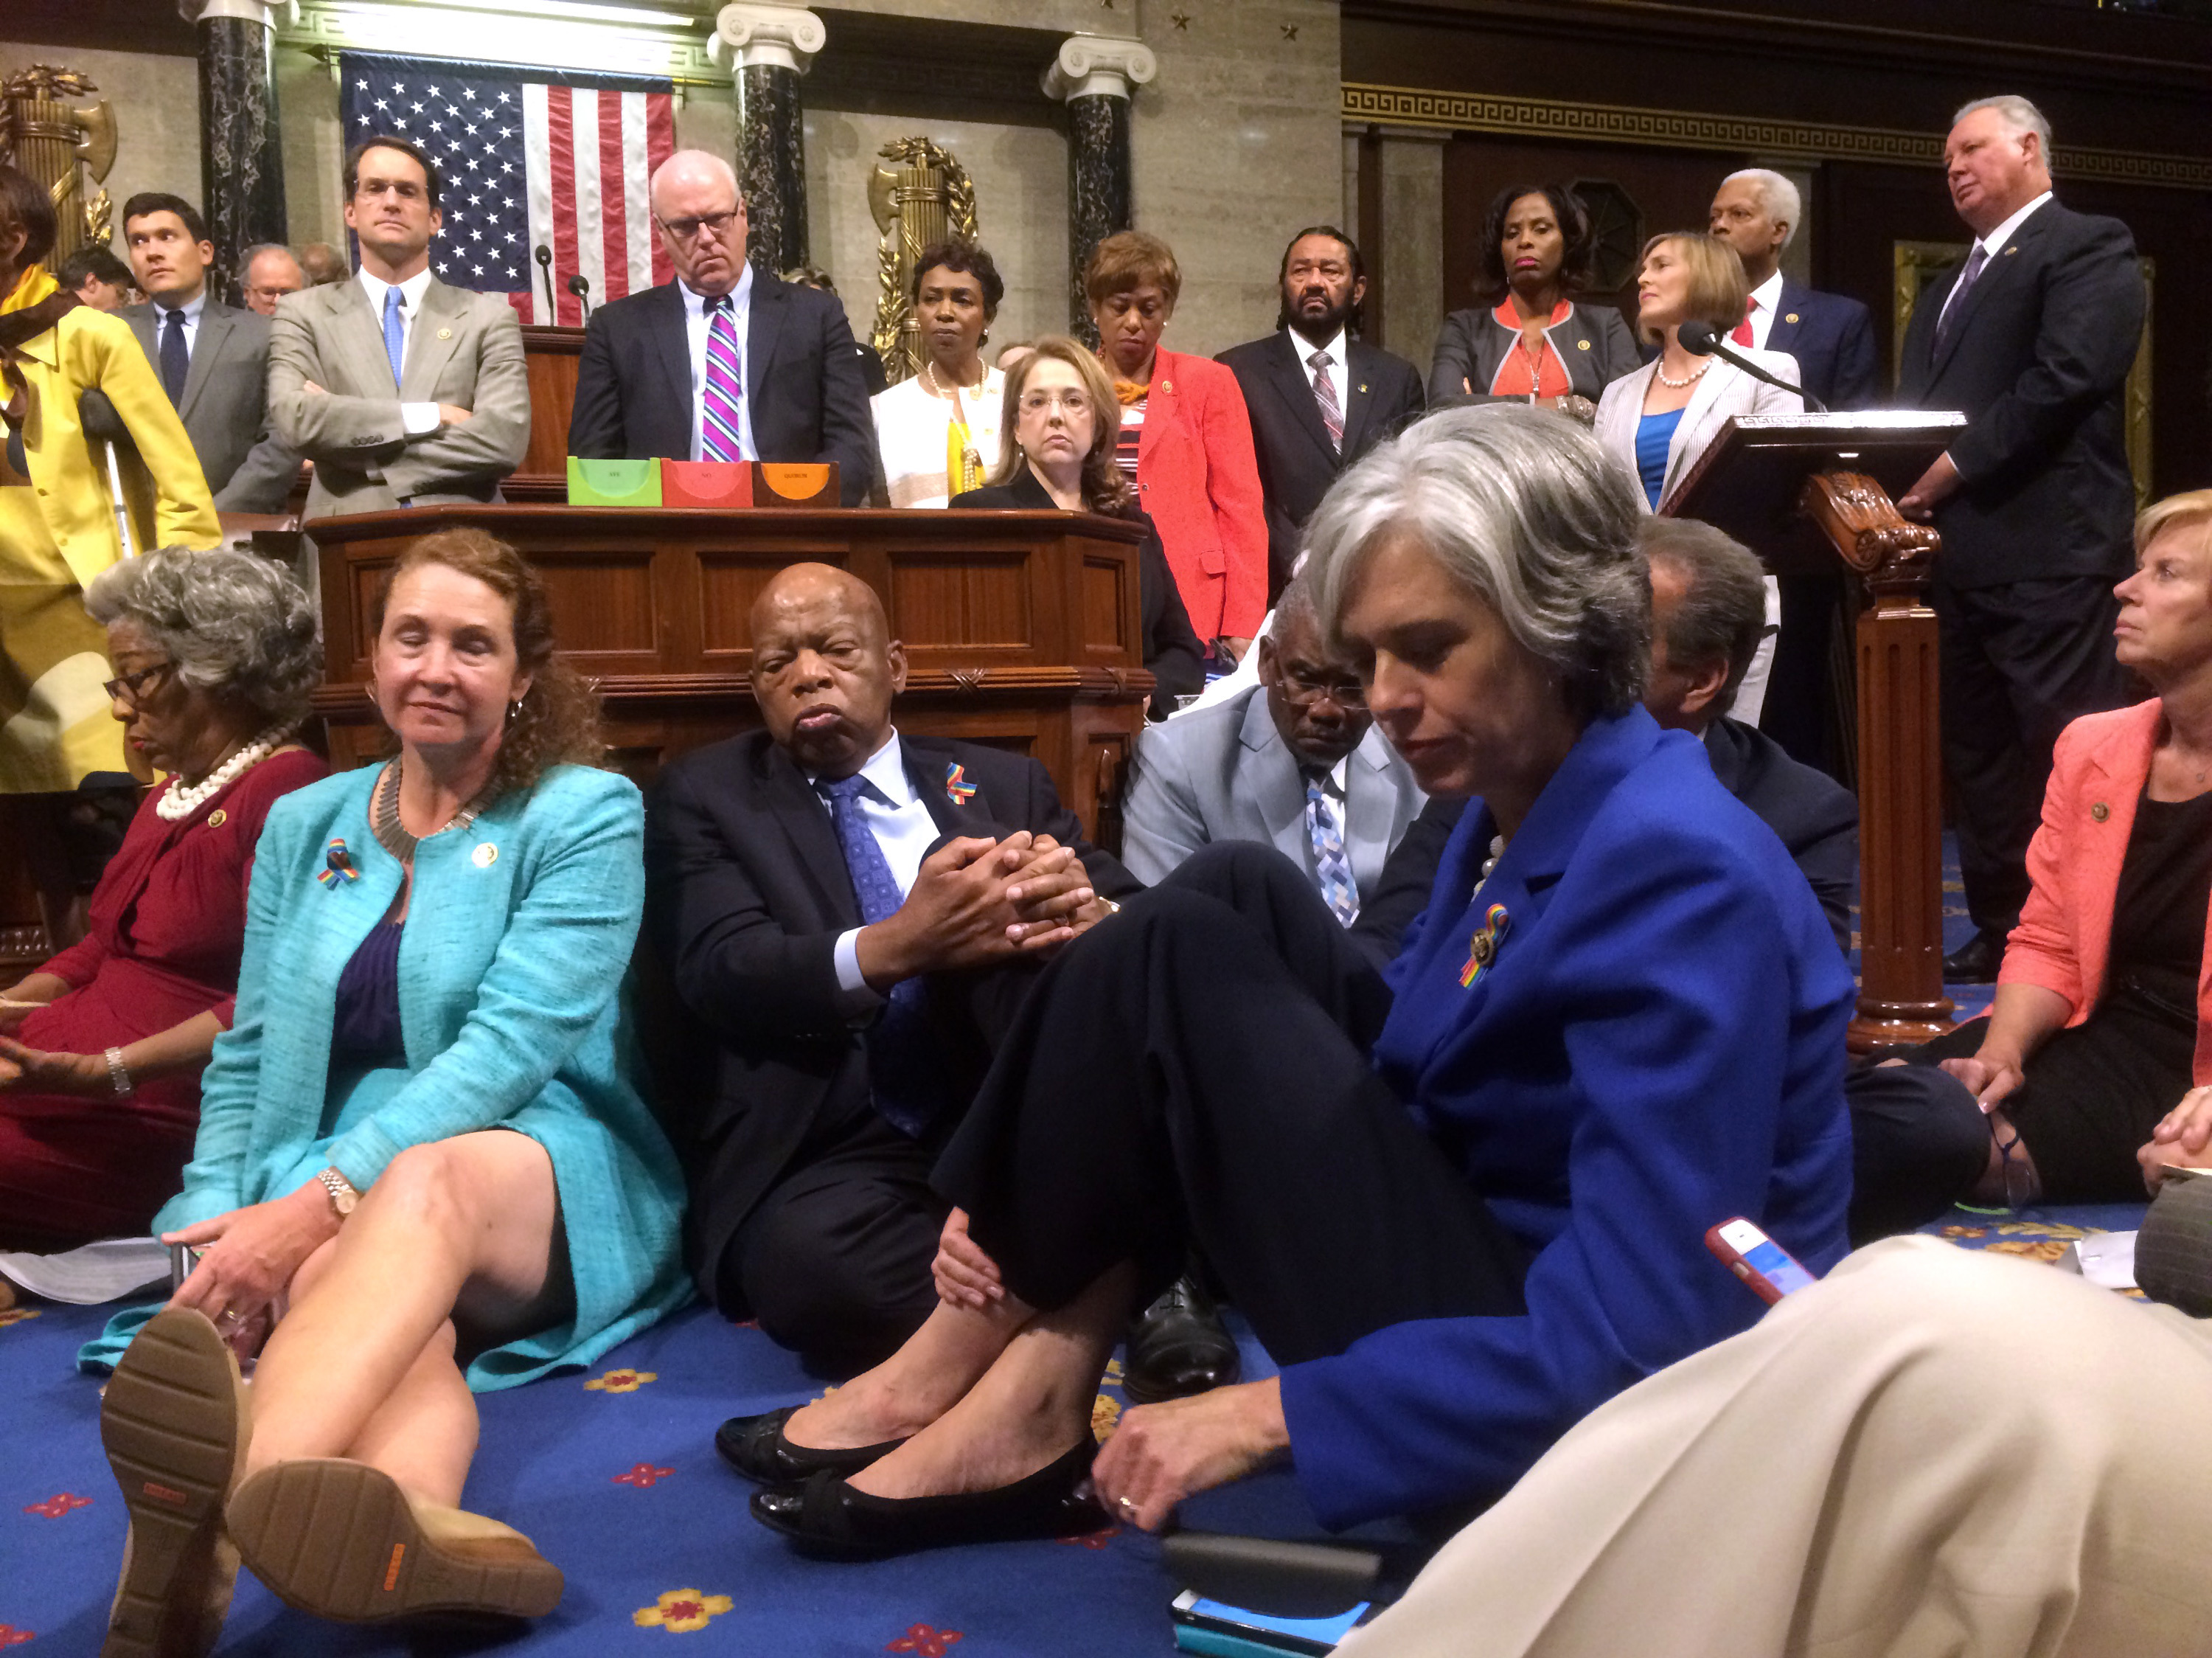 Democratic members of Congress, including Rep. Elizabeth Esty, D-Conn.(seated left), Rep. John Lewis, D-Ga. (center) as they participate in a sit-down protest seeking a vote on gun control measures on Wednesday. Courtesy of Rep. Chellie Pingree